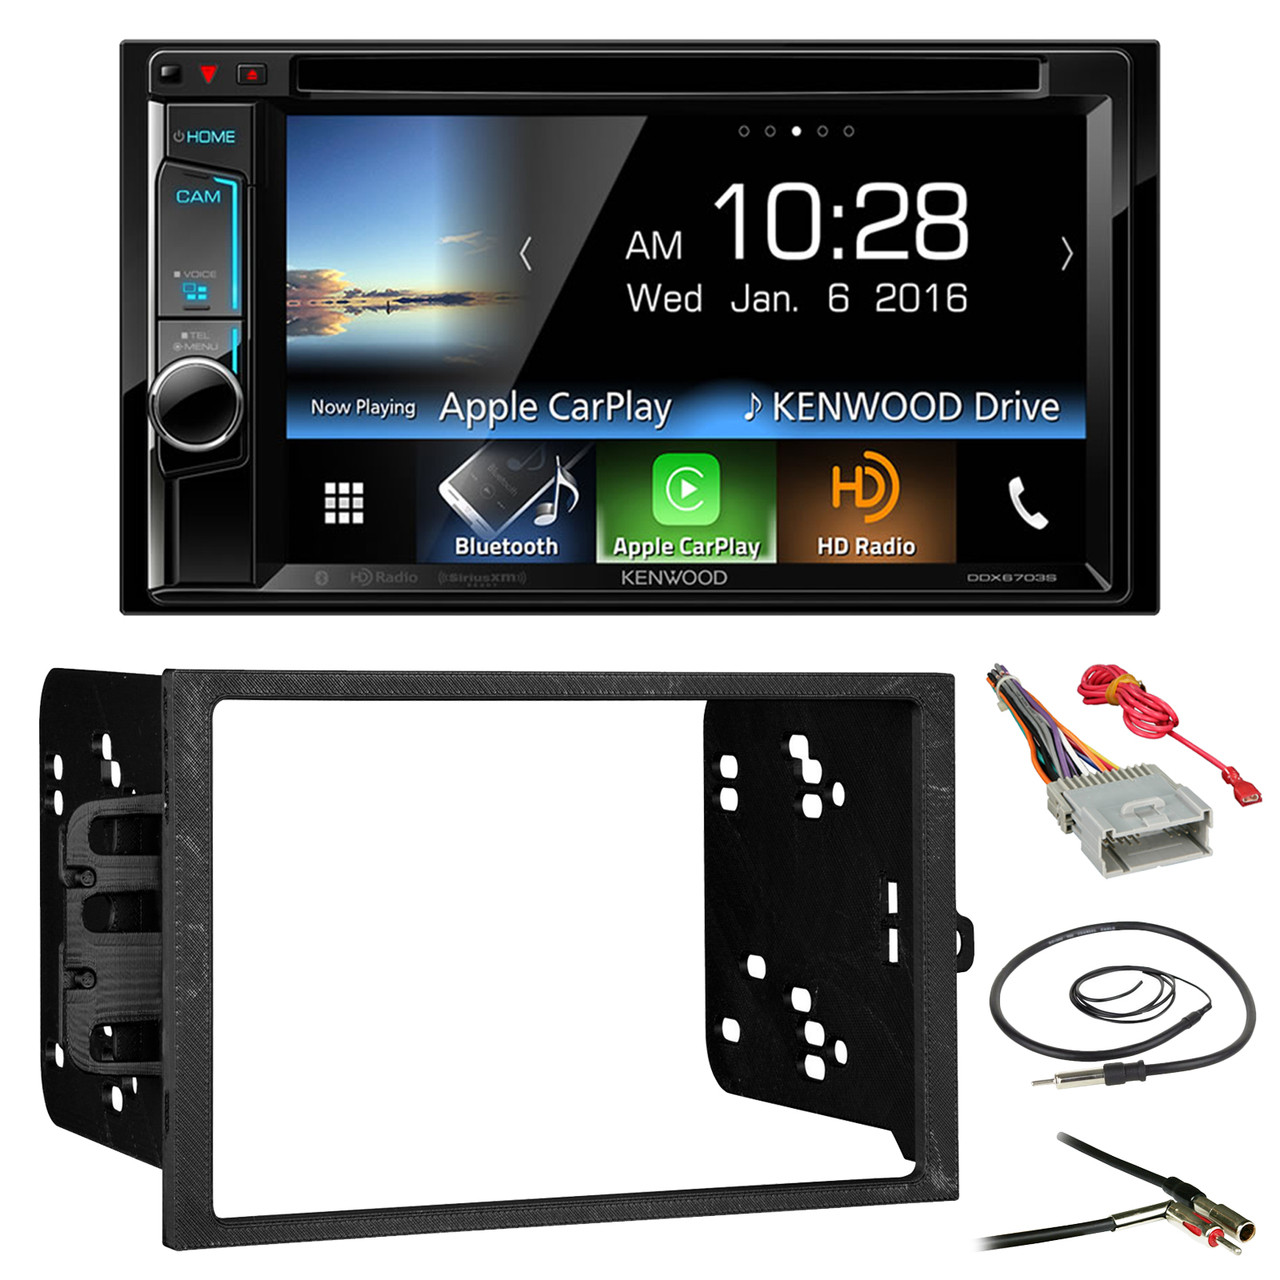 Kenwood Ddx6703s 6 2 Double Din Cd Dvd Bluetooth Car Stereo